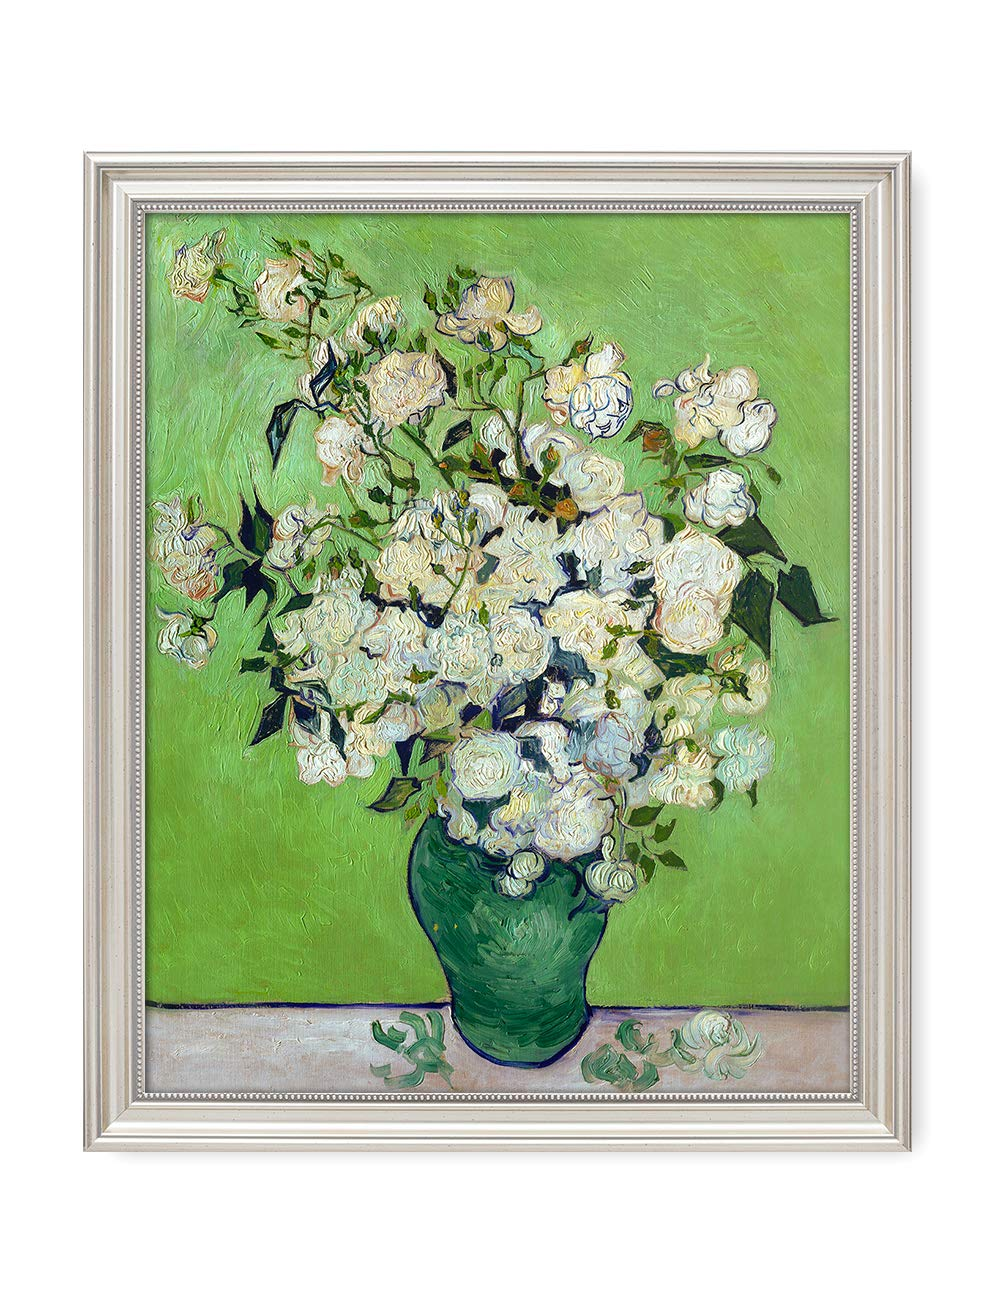 DECORARTS - Pink Roses in a Vase, Vincent Van Gogh Art Reproduction. Giclee Print& Framed Art for Wall Decor. 20x16, Framed Size: 23x19